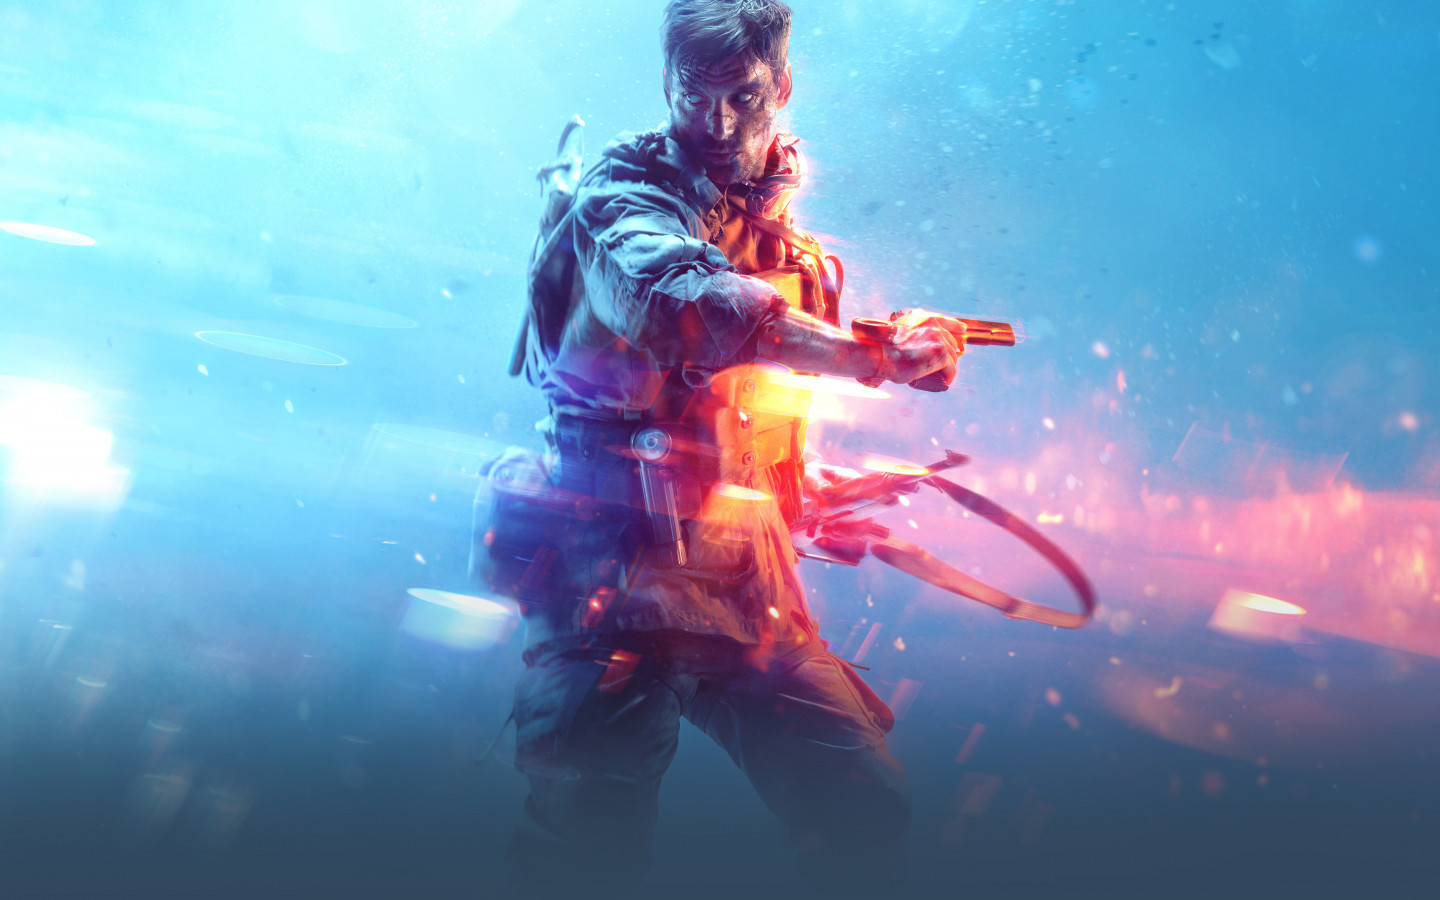 Battlefield V | 1440x900 wallpaper